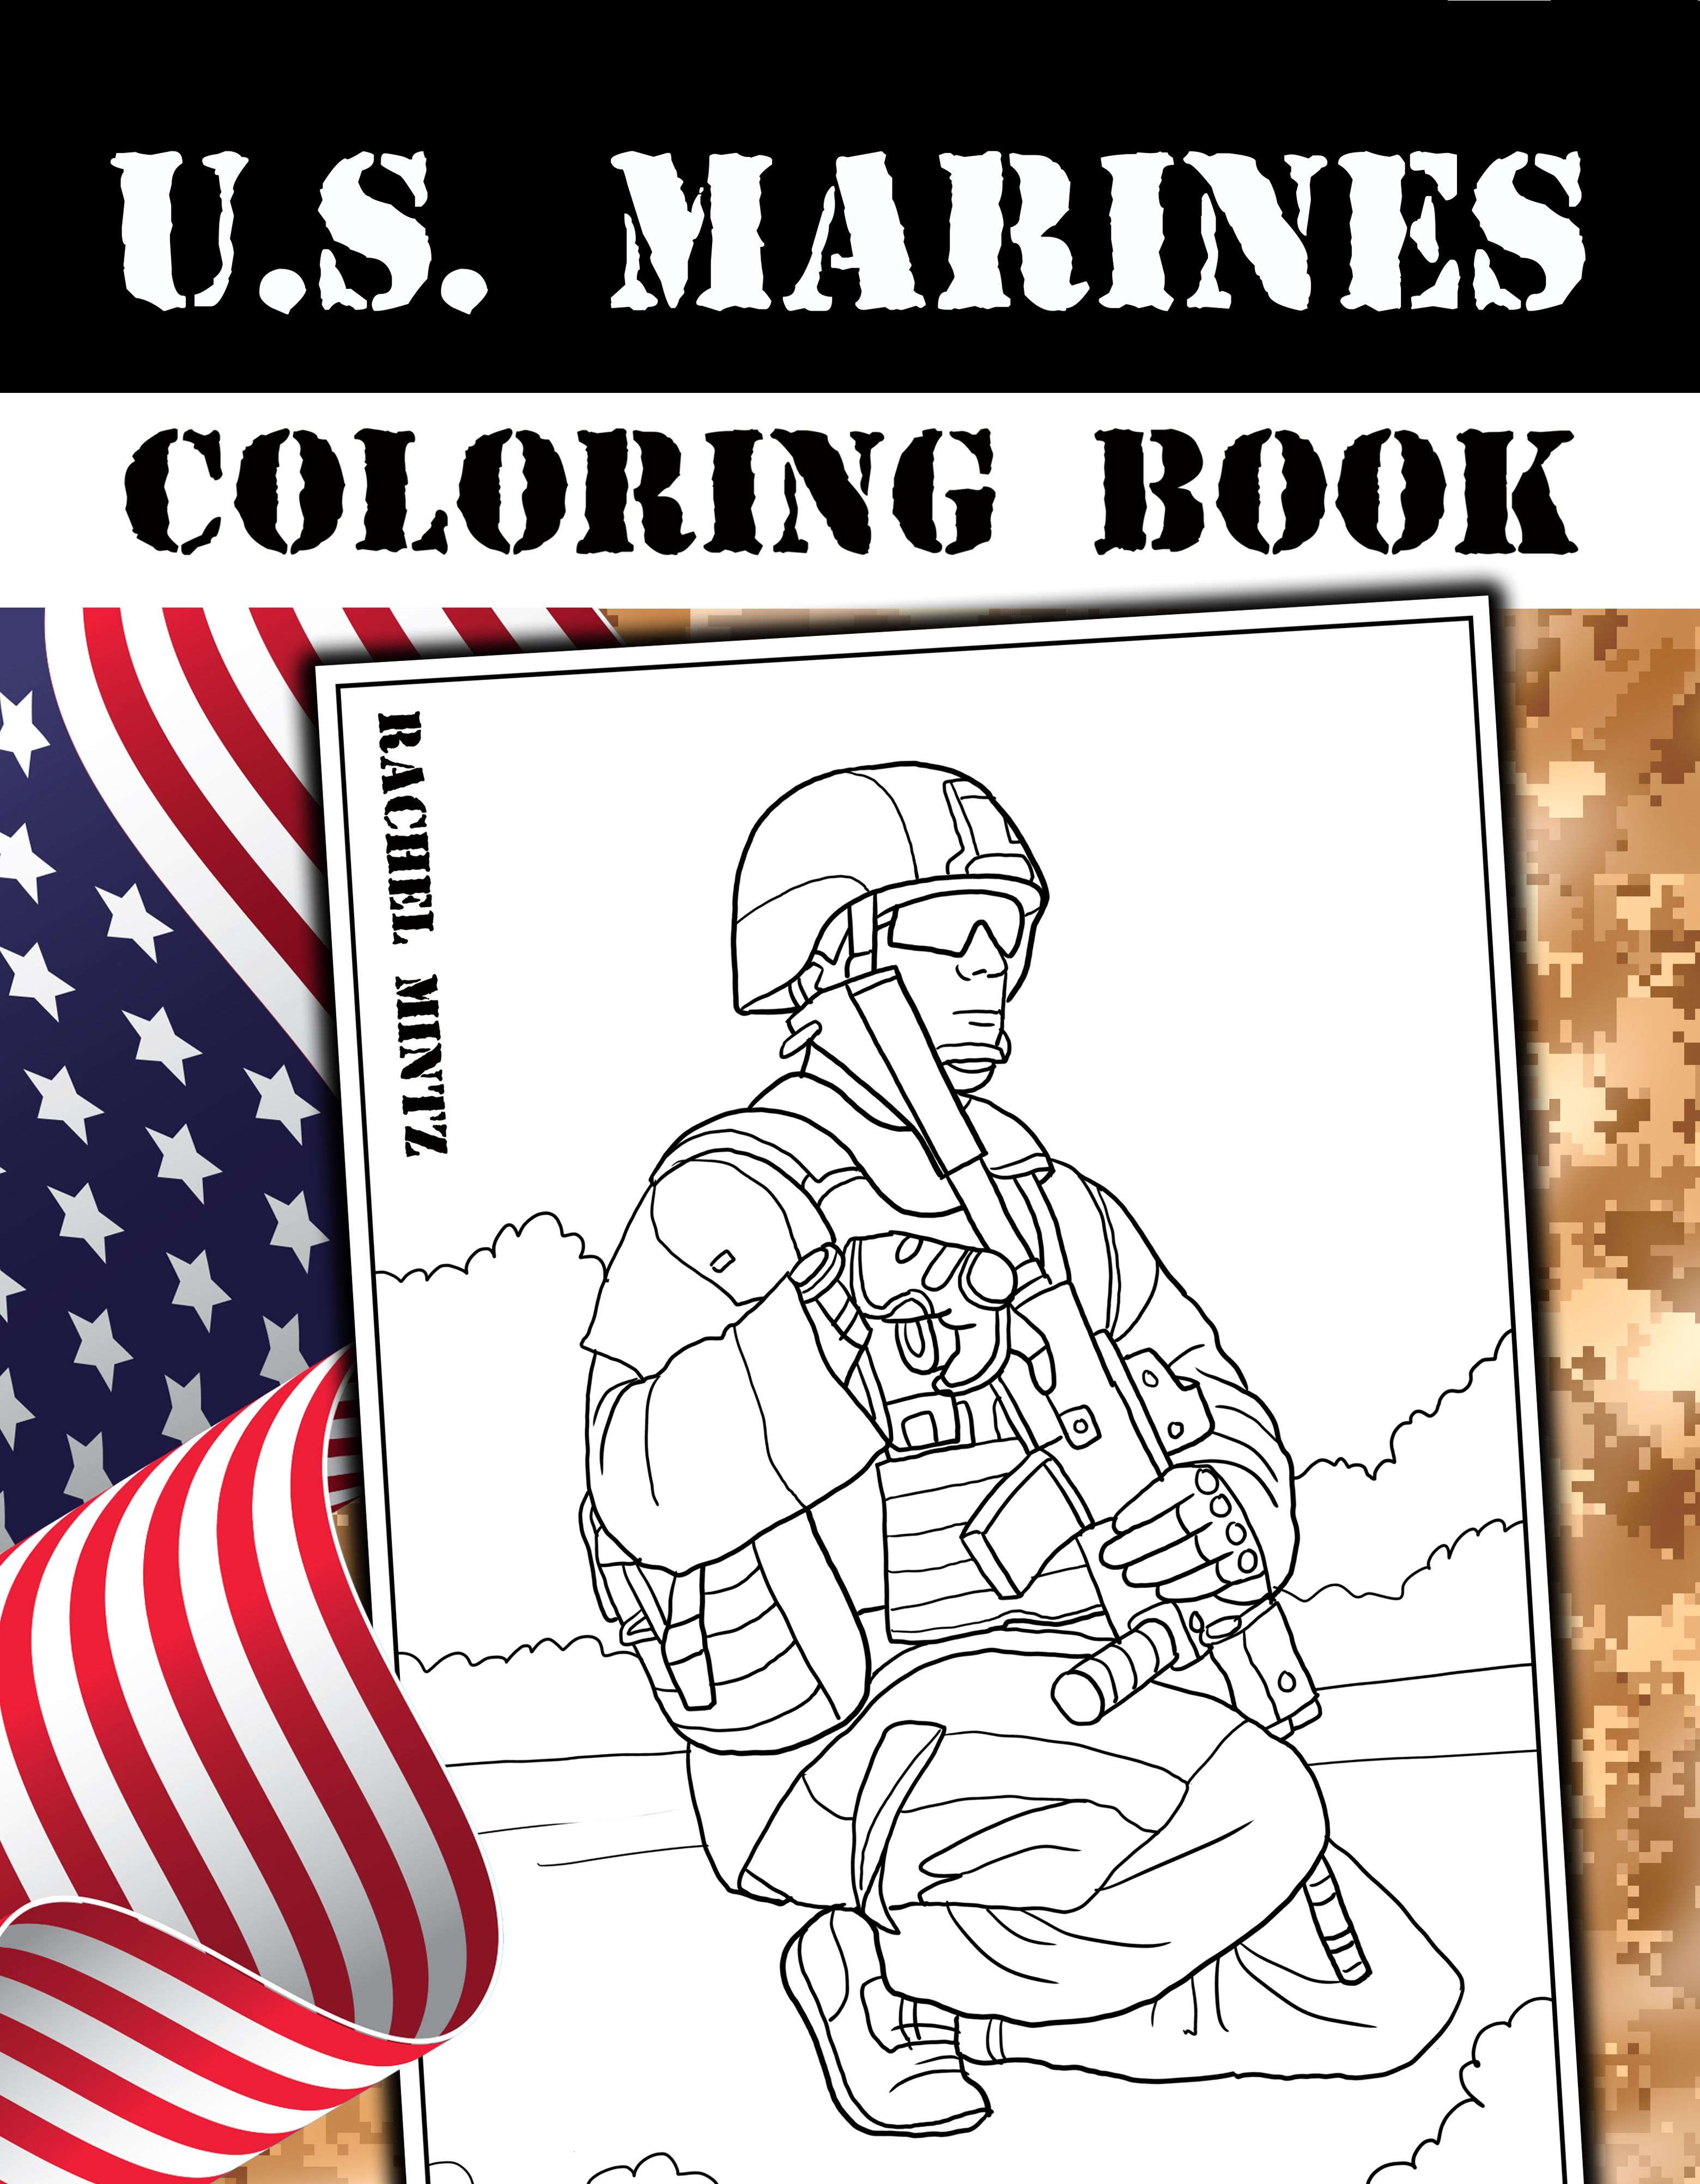 New coloring book with brave Marines in combat action scenes ...